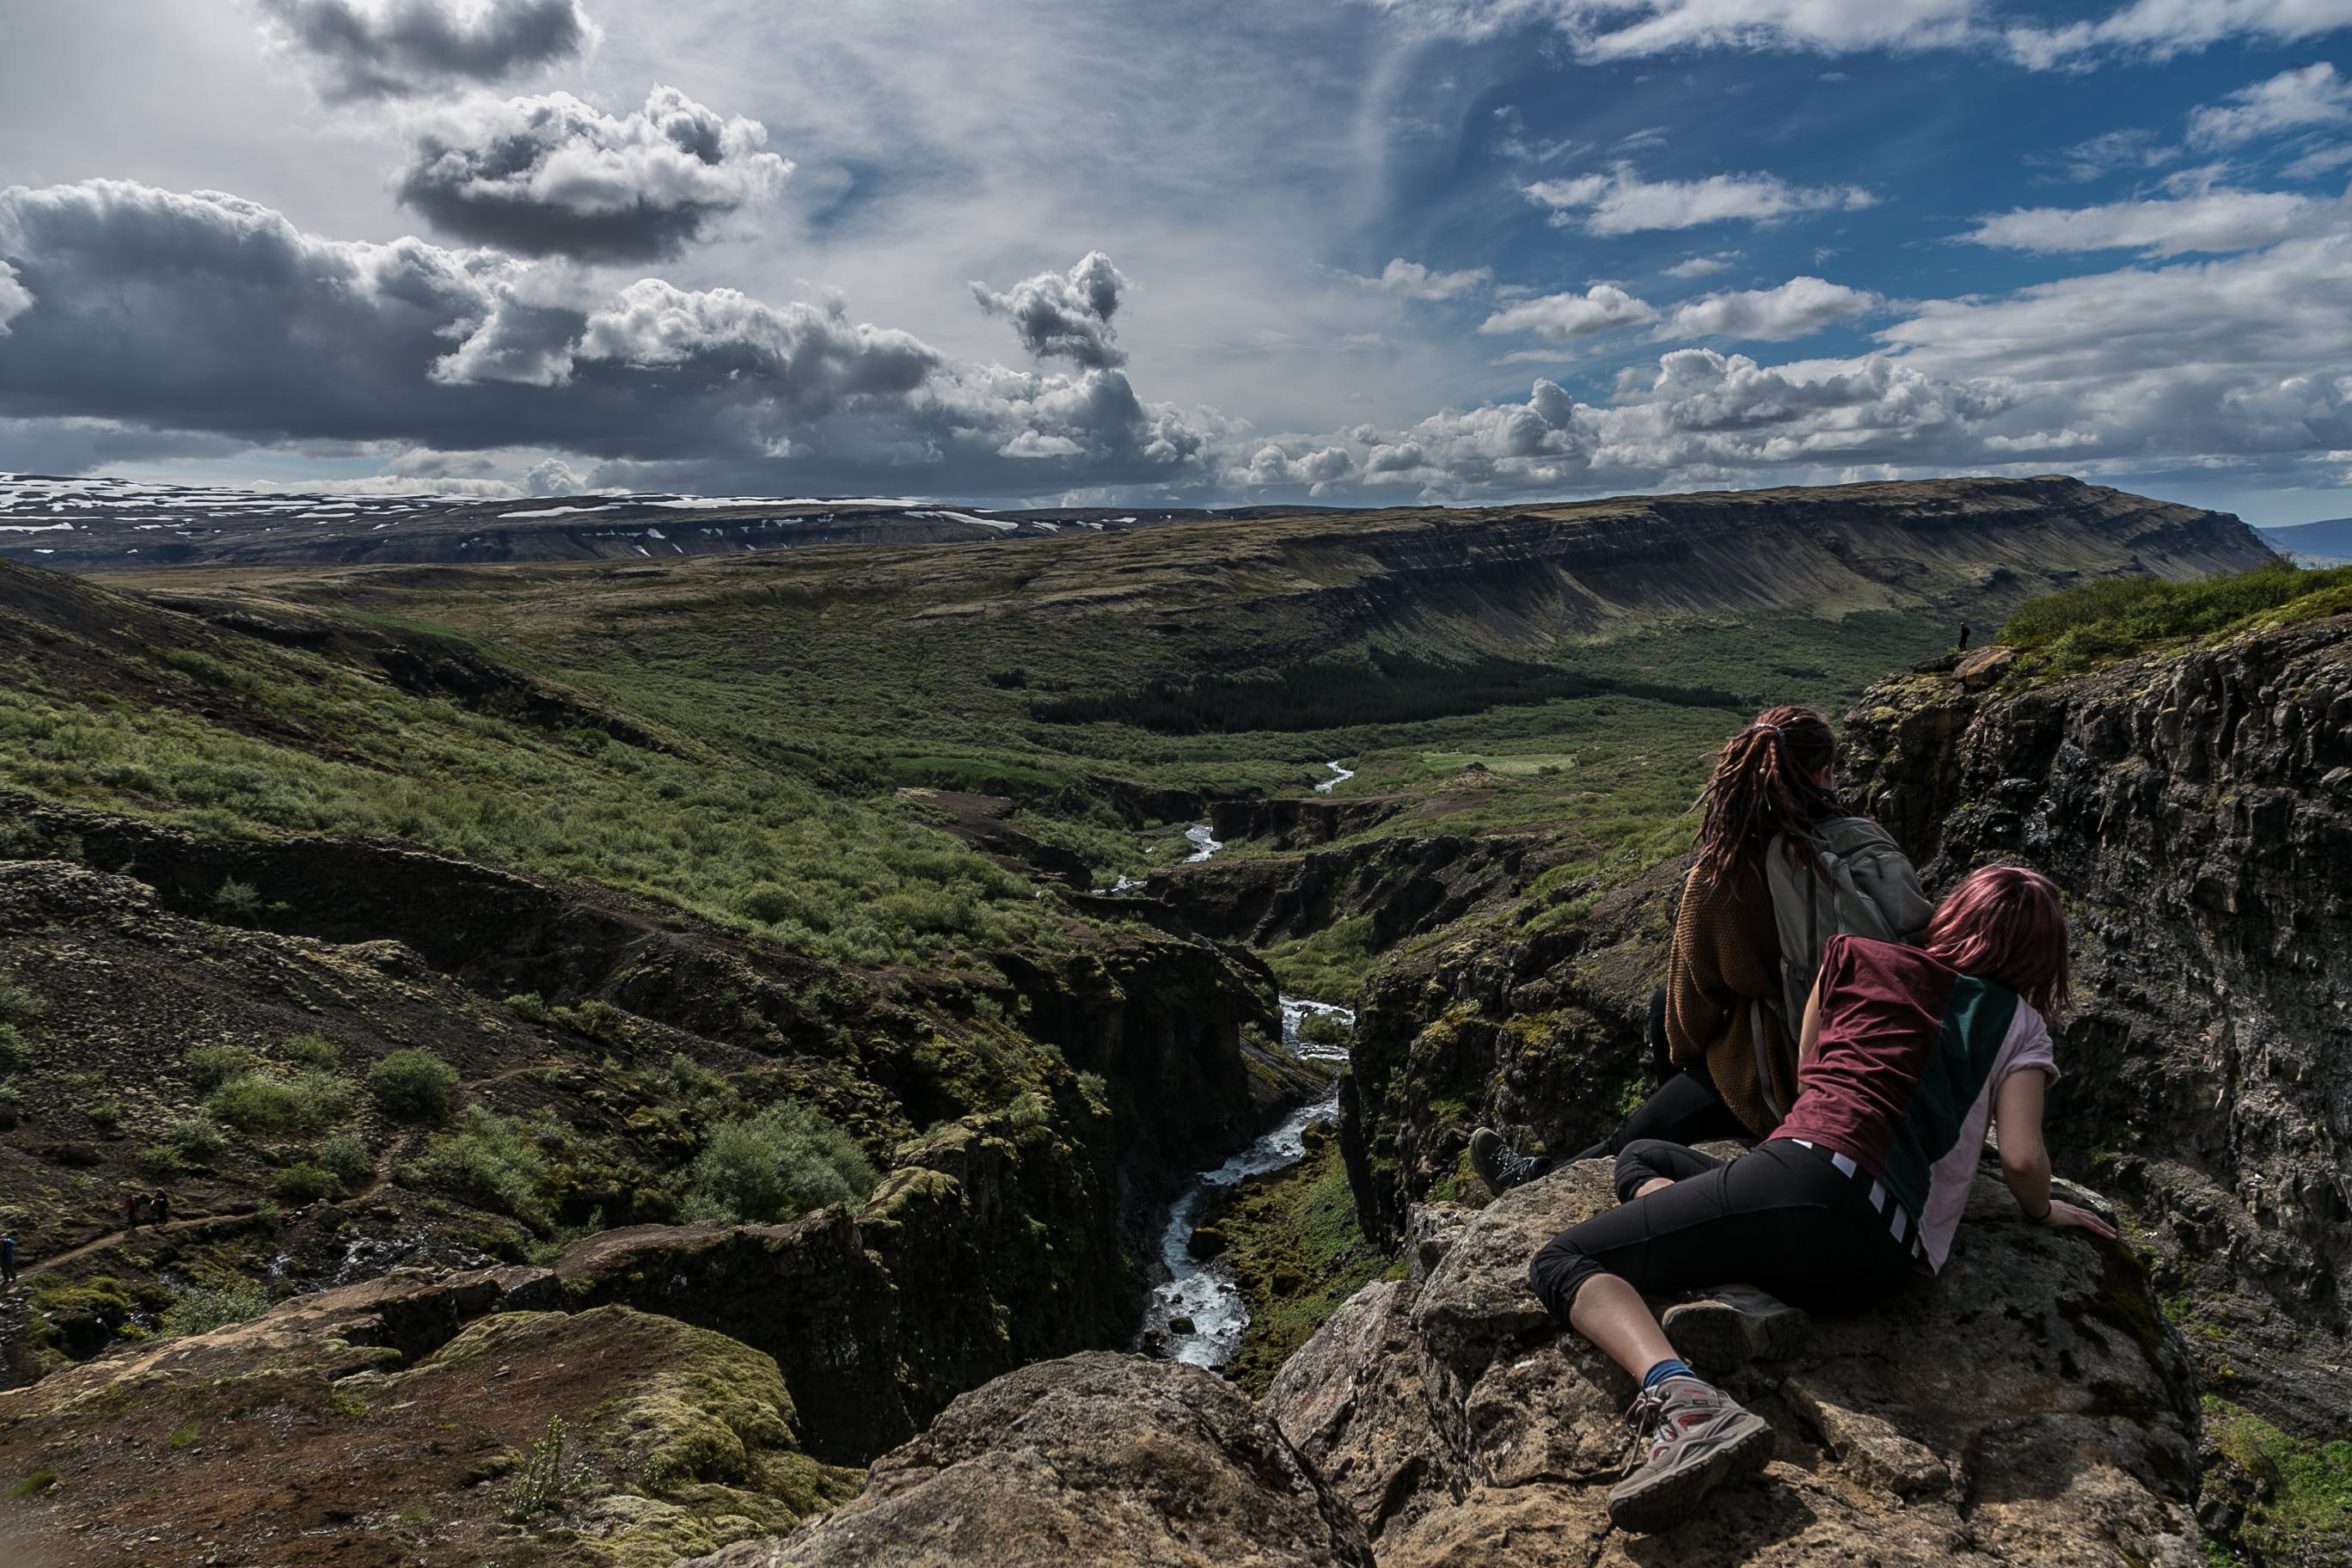 Landscape Photography of Woman Lying on Rock Mountain